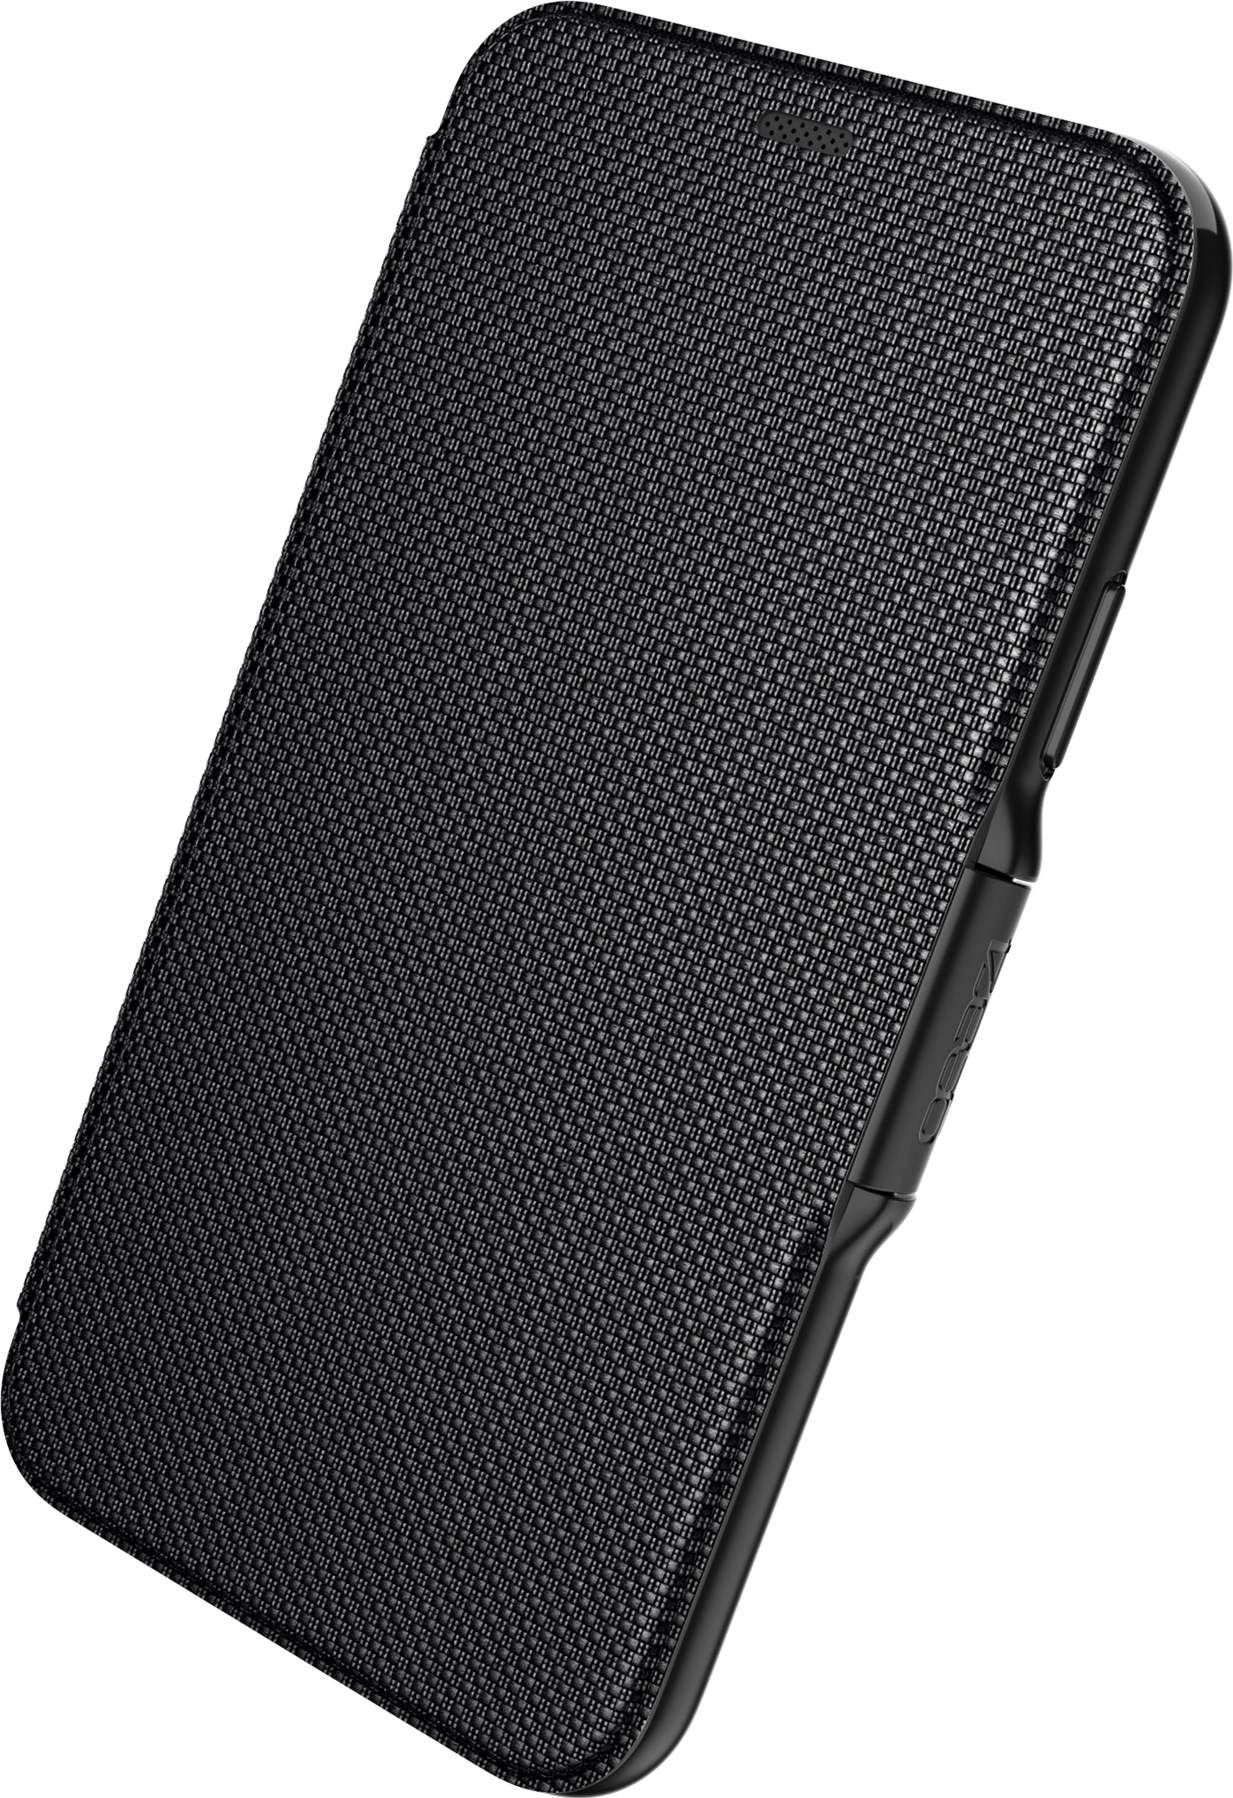 gear4 D3o Oxford Iphone 11 Pro Max Black